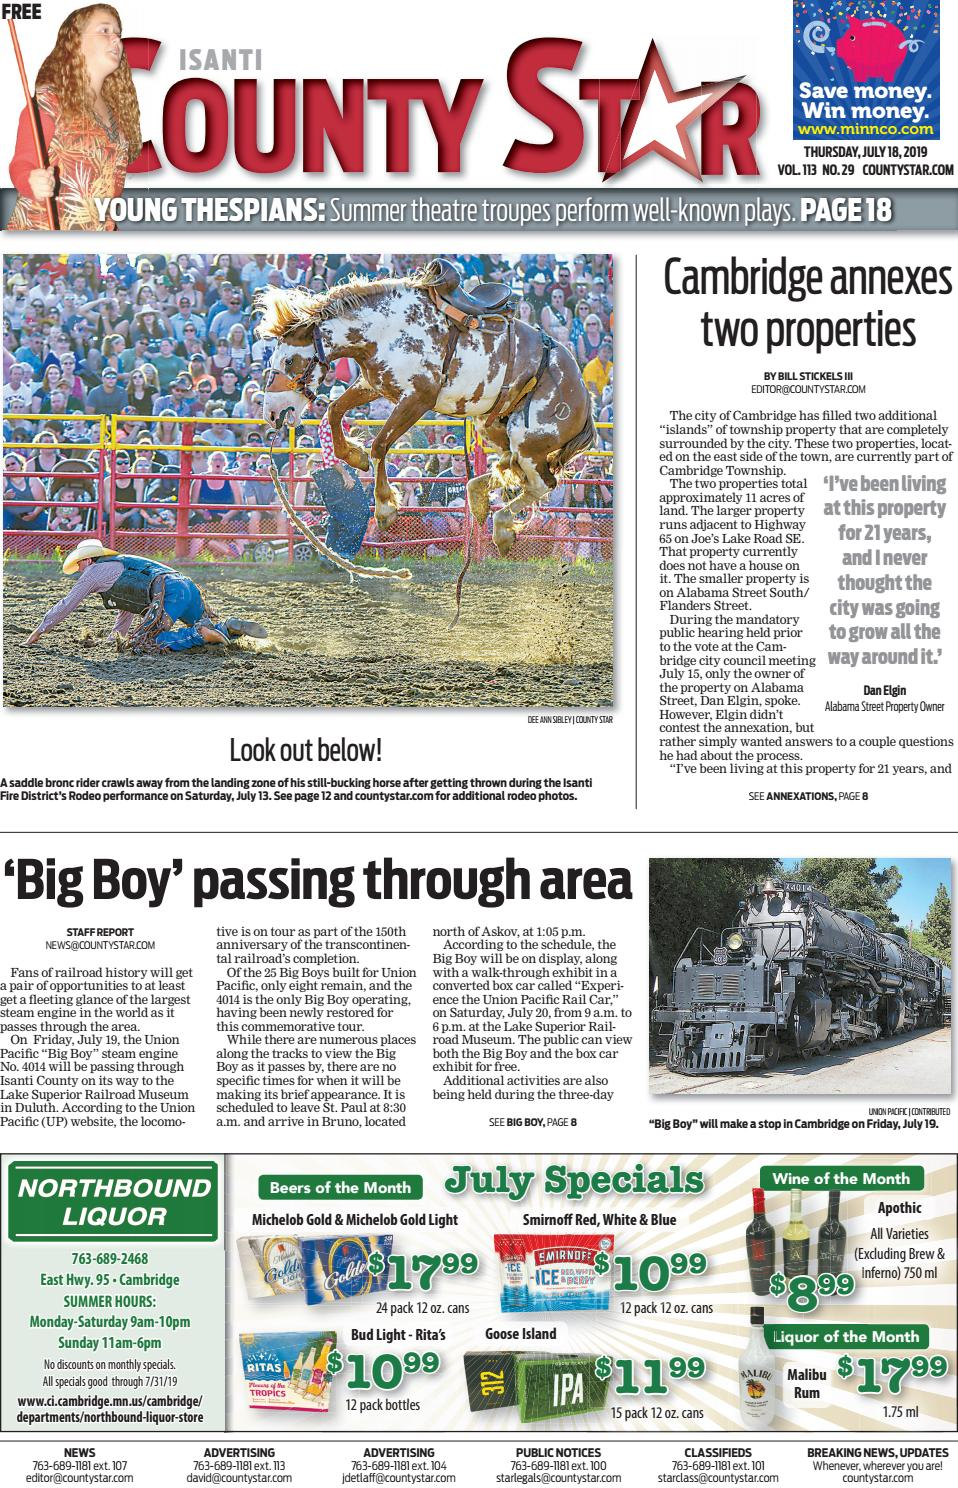 Isanti County Star July 18, 2019 by Isanti-Chisago County